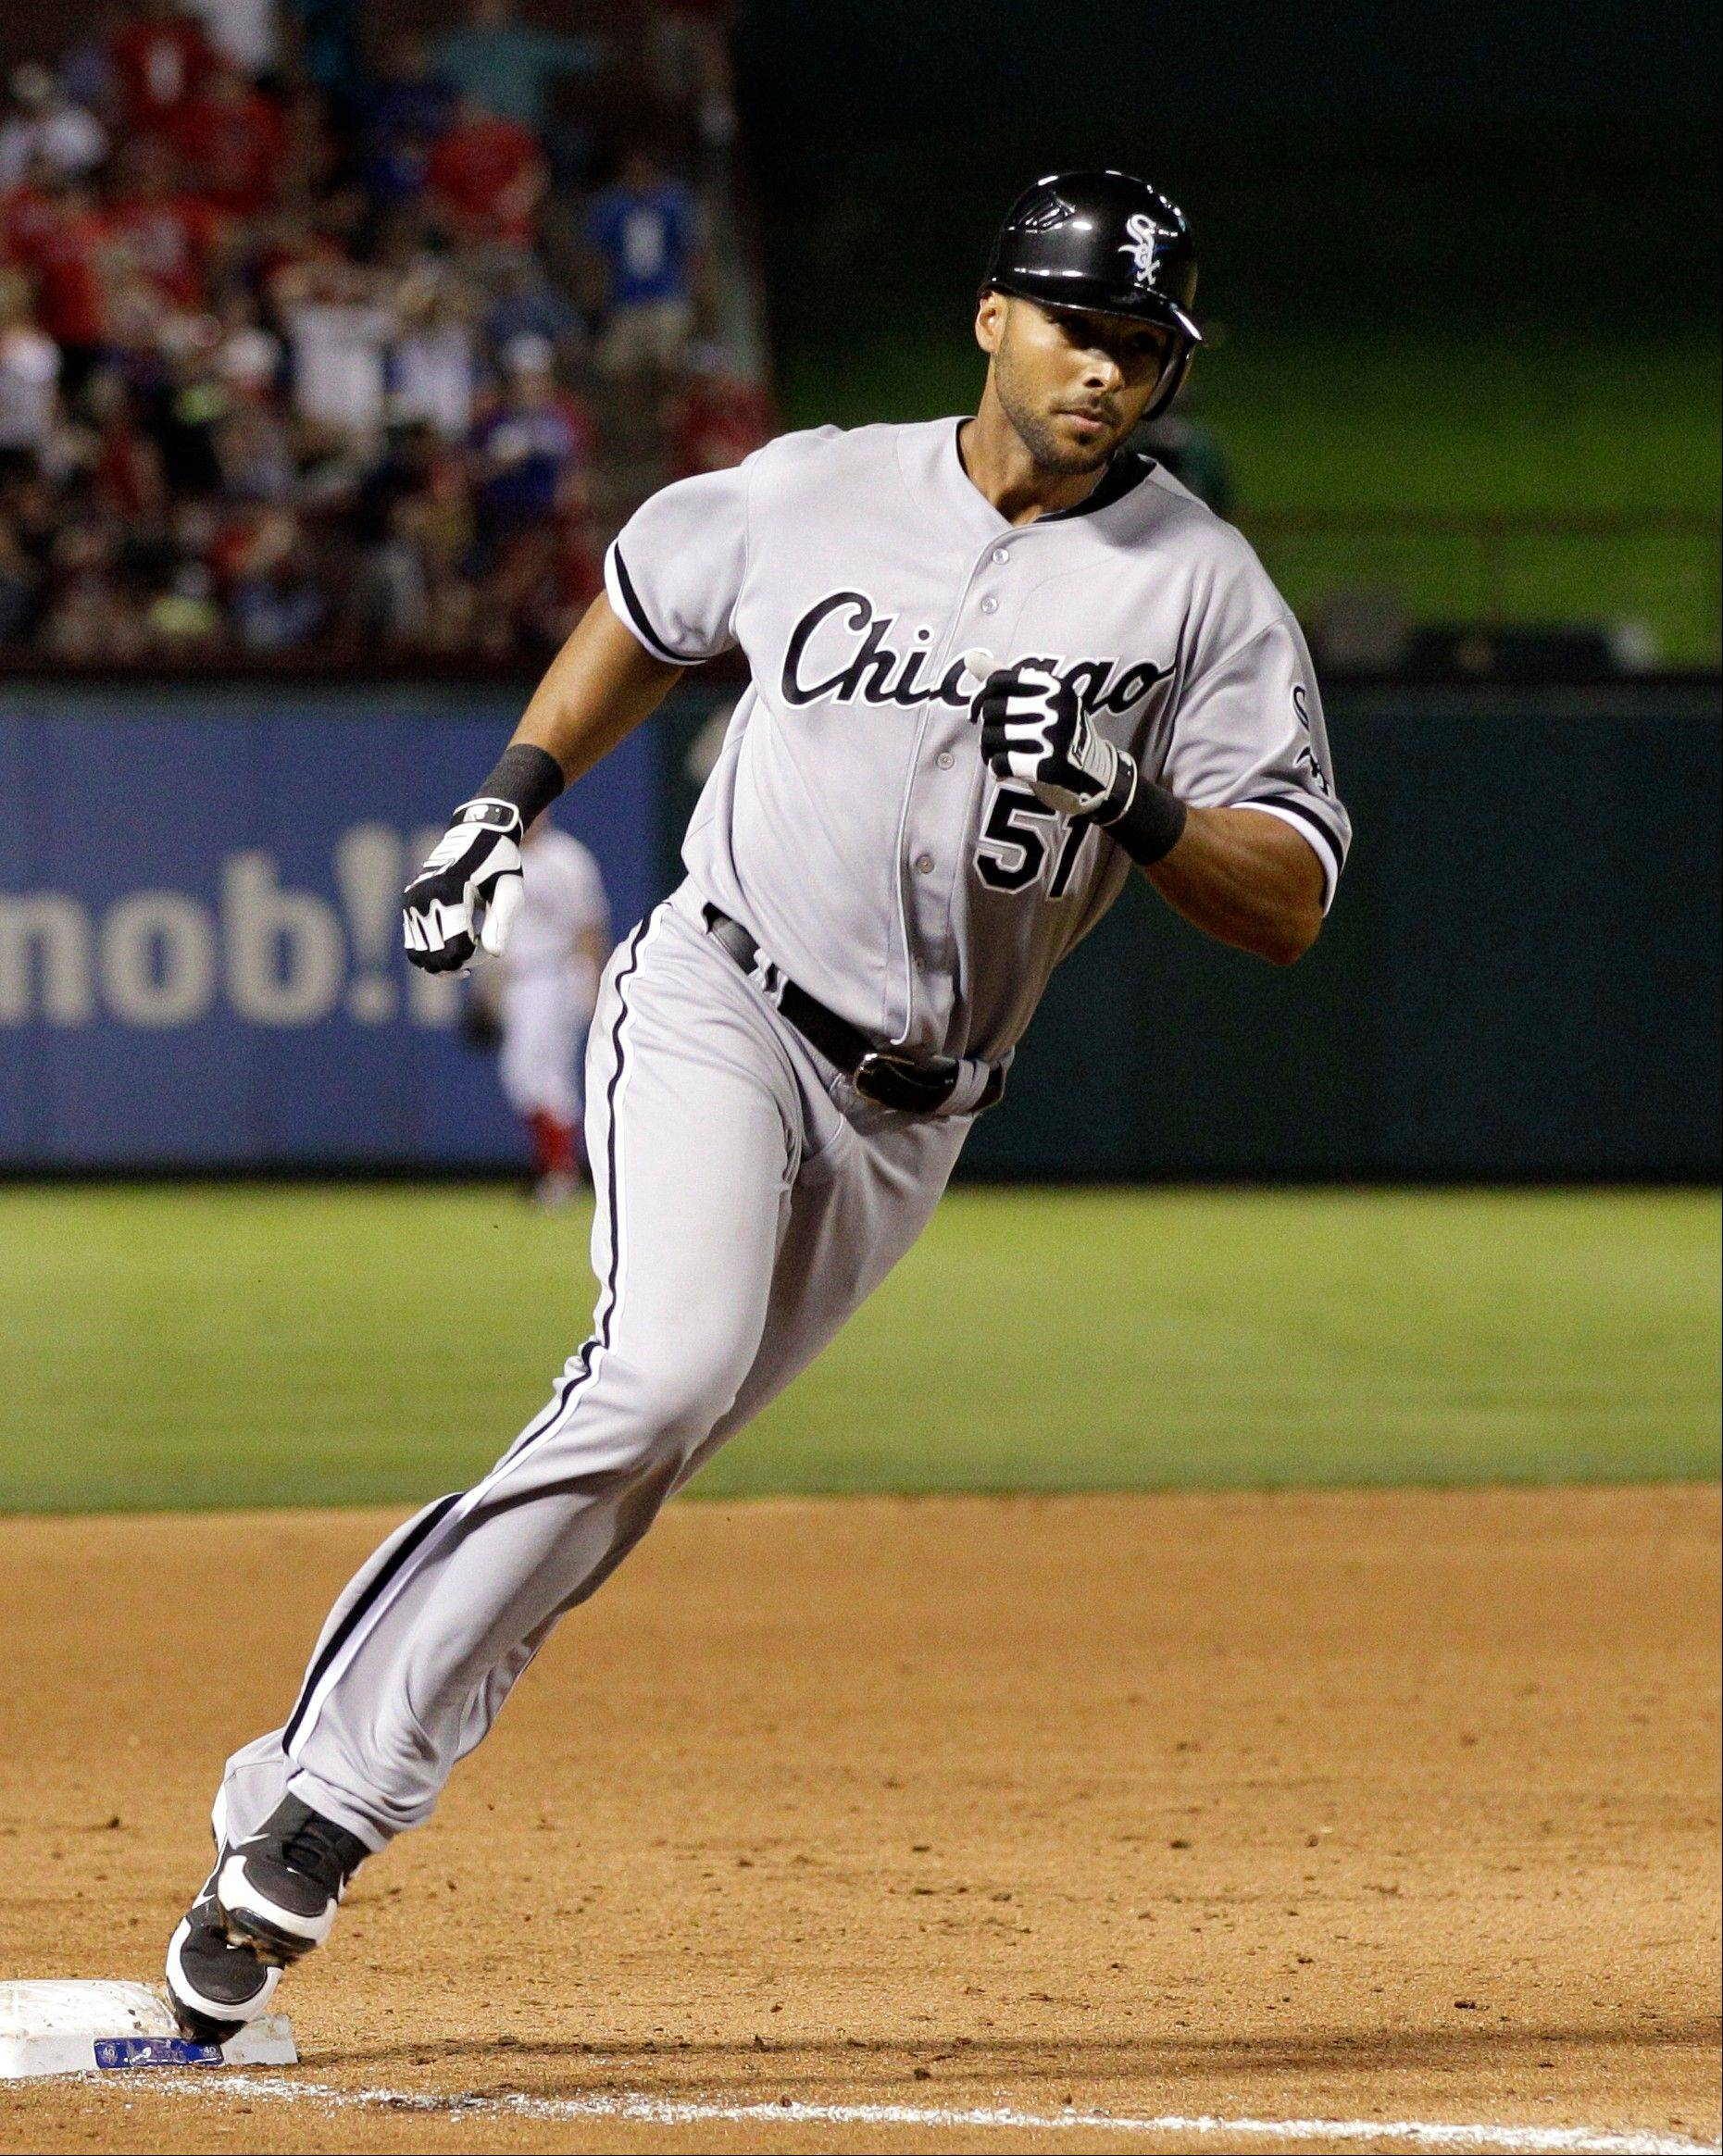 Alex Rios rounds third after hitting his game-winning home run in the ninth inning Saturday at Texas.